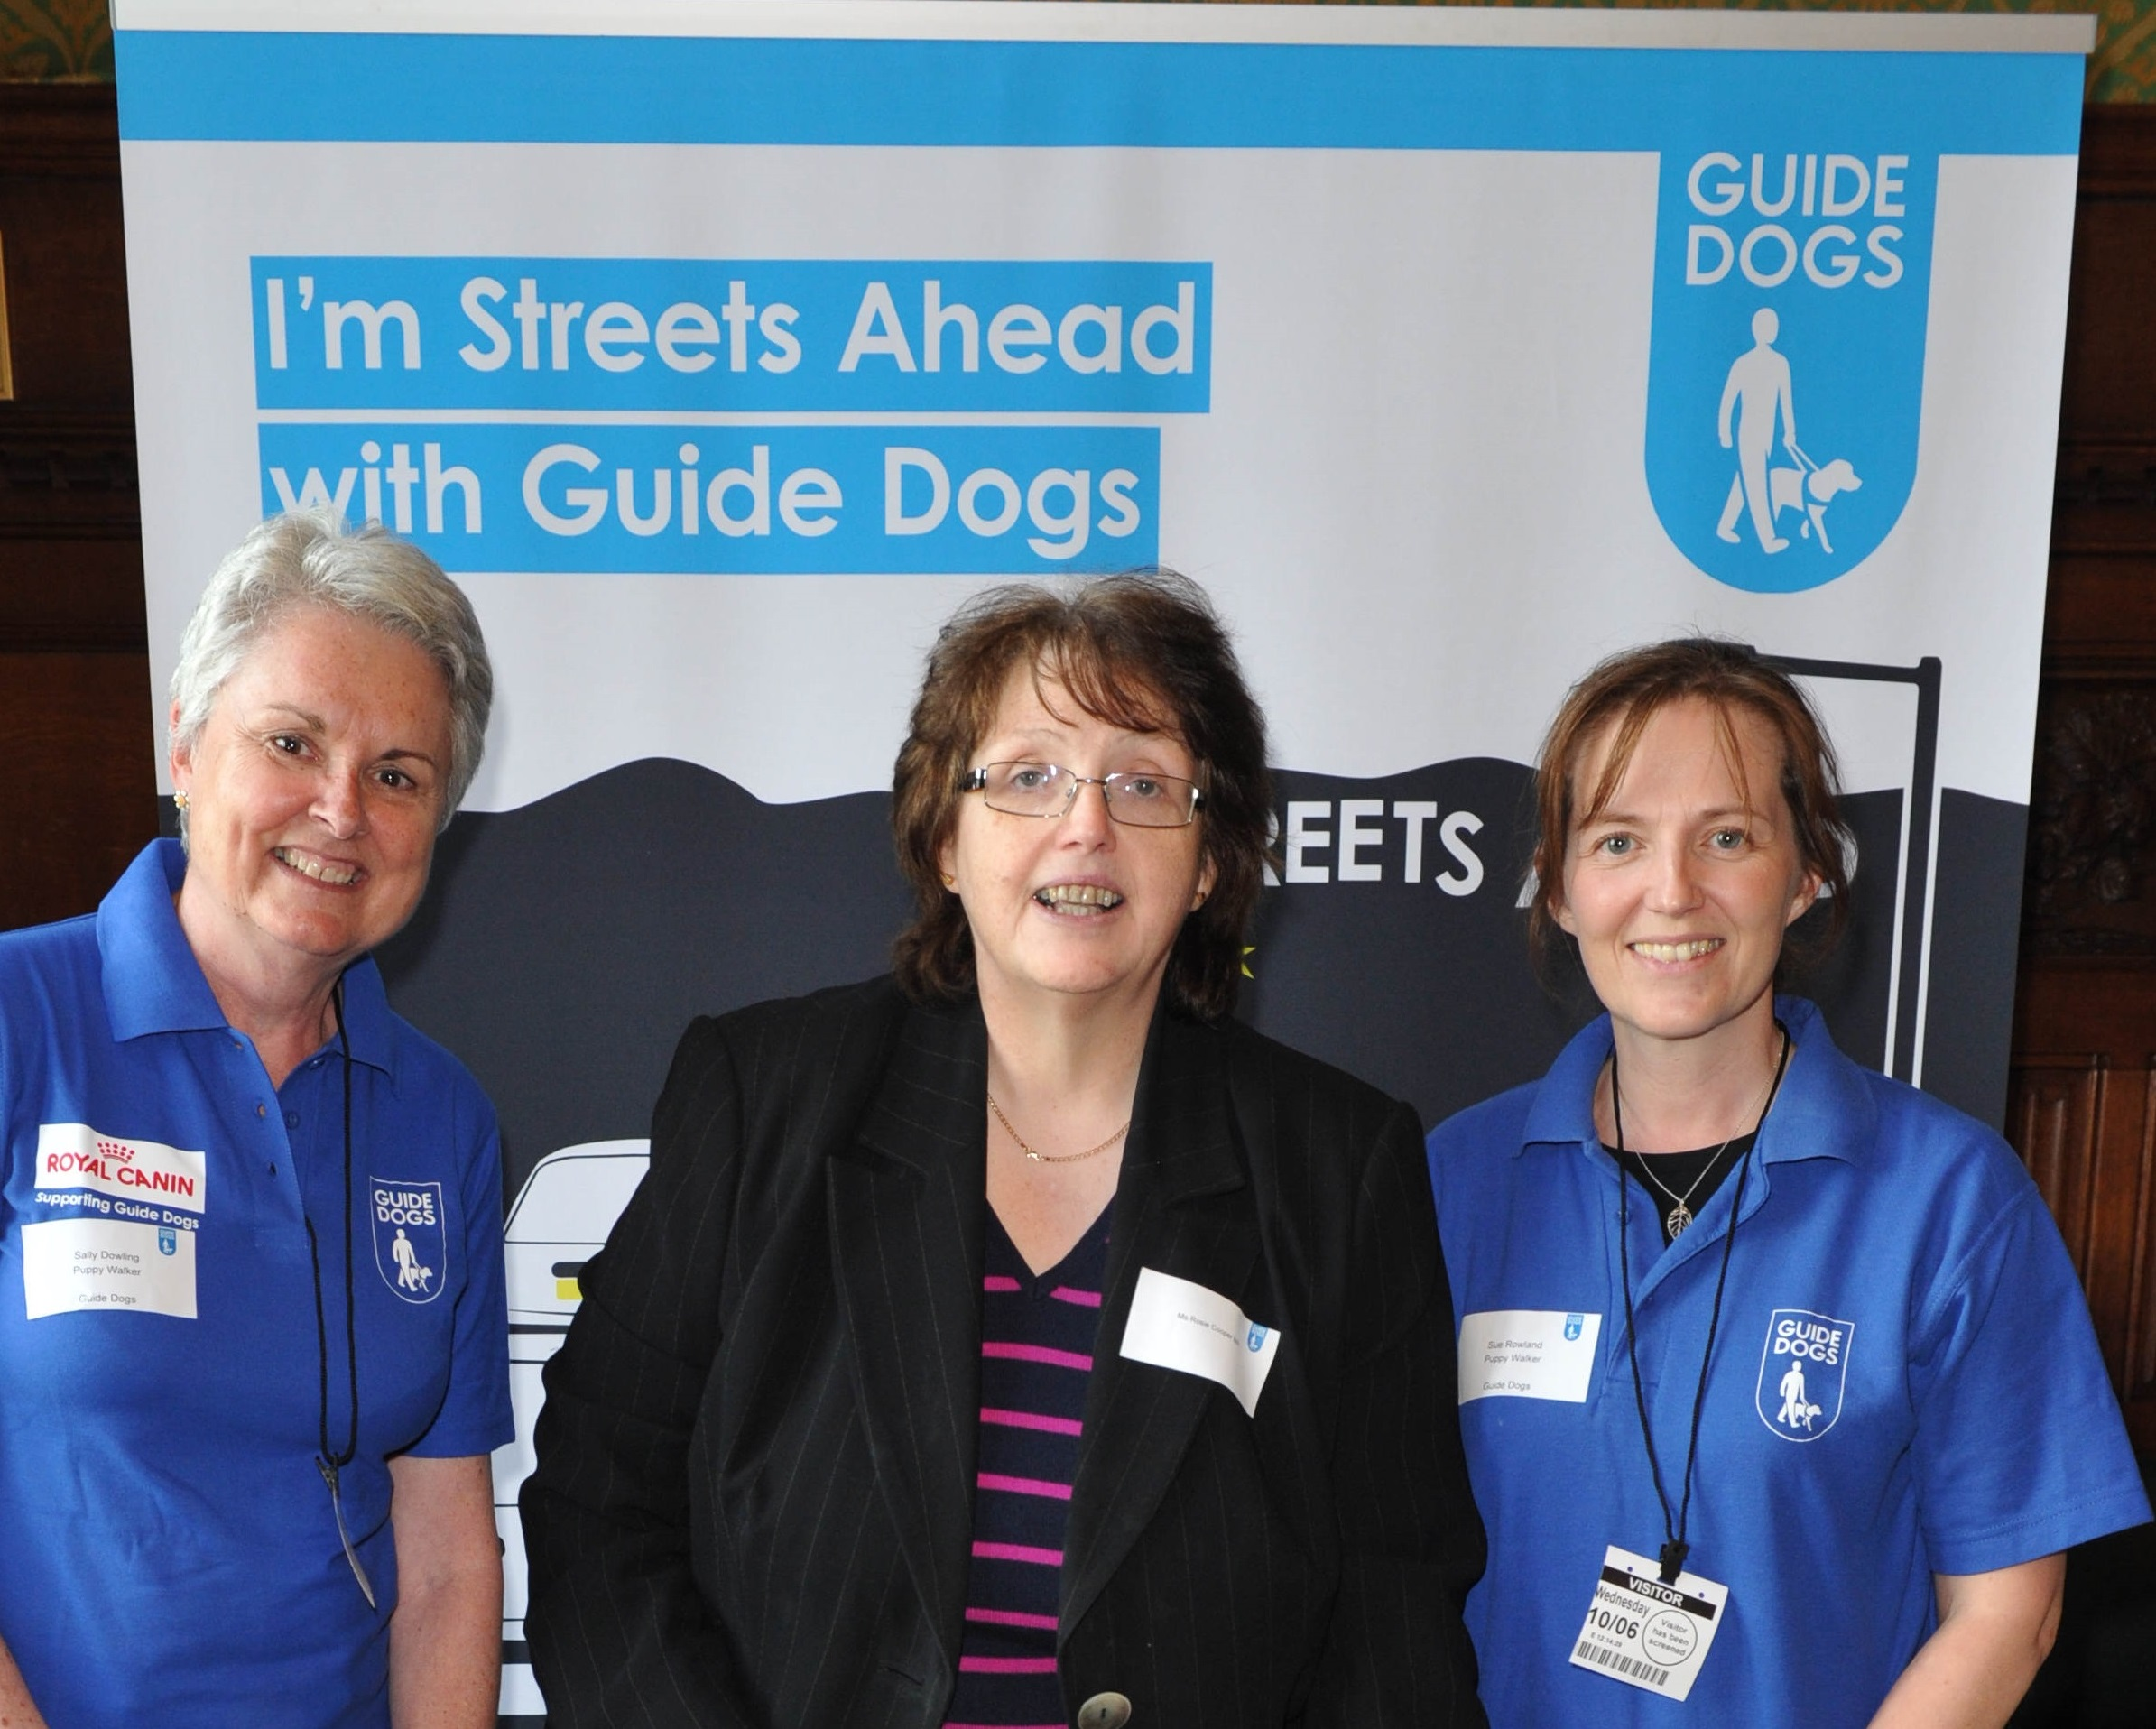 Rosie_Cooper_MP_with_Guide_Dogs.jpg